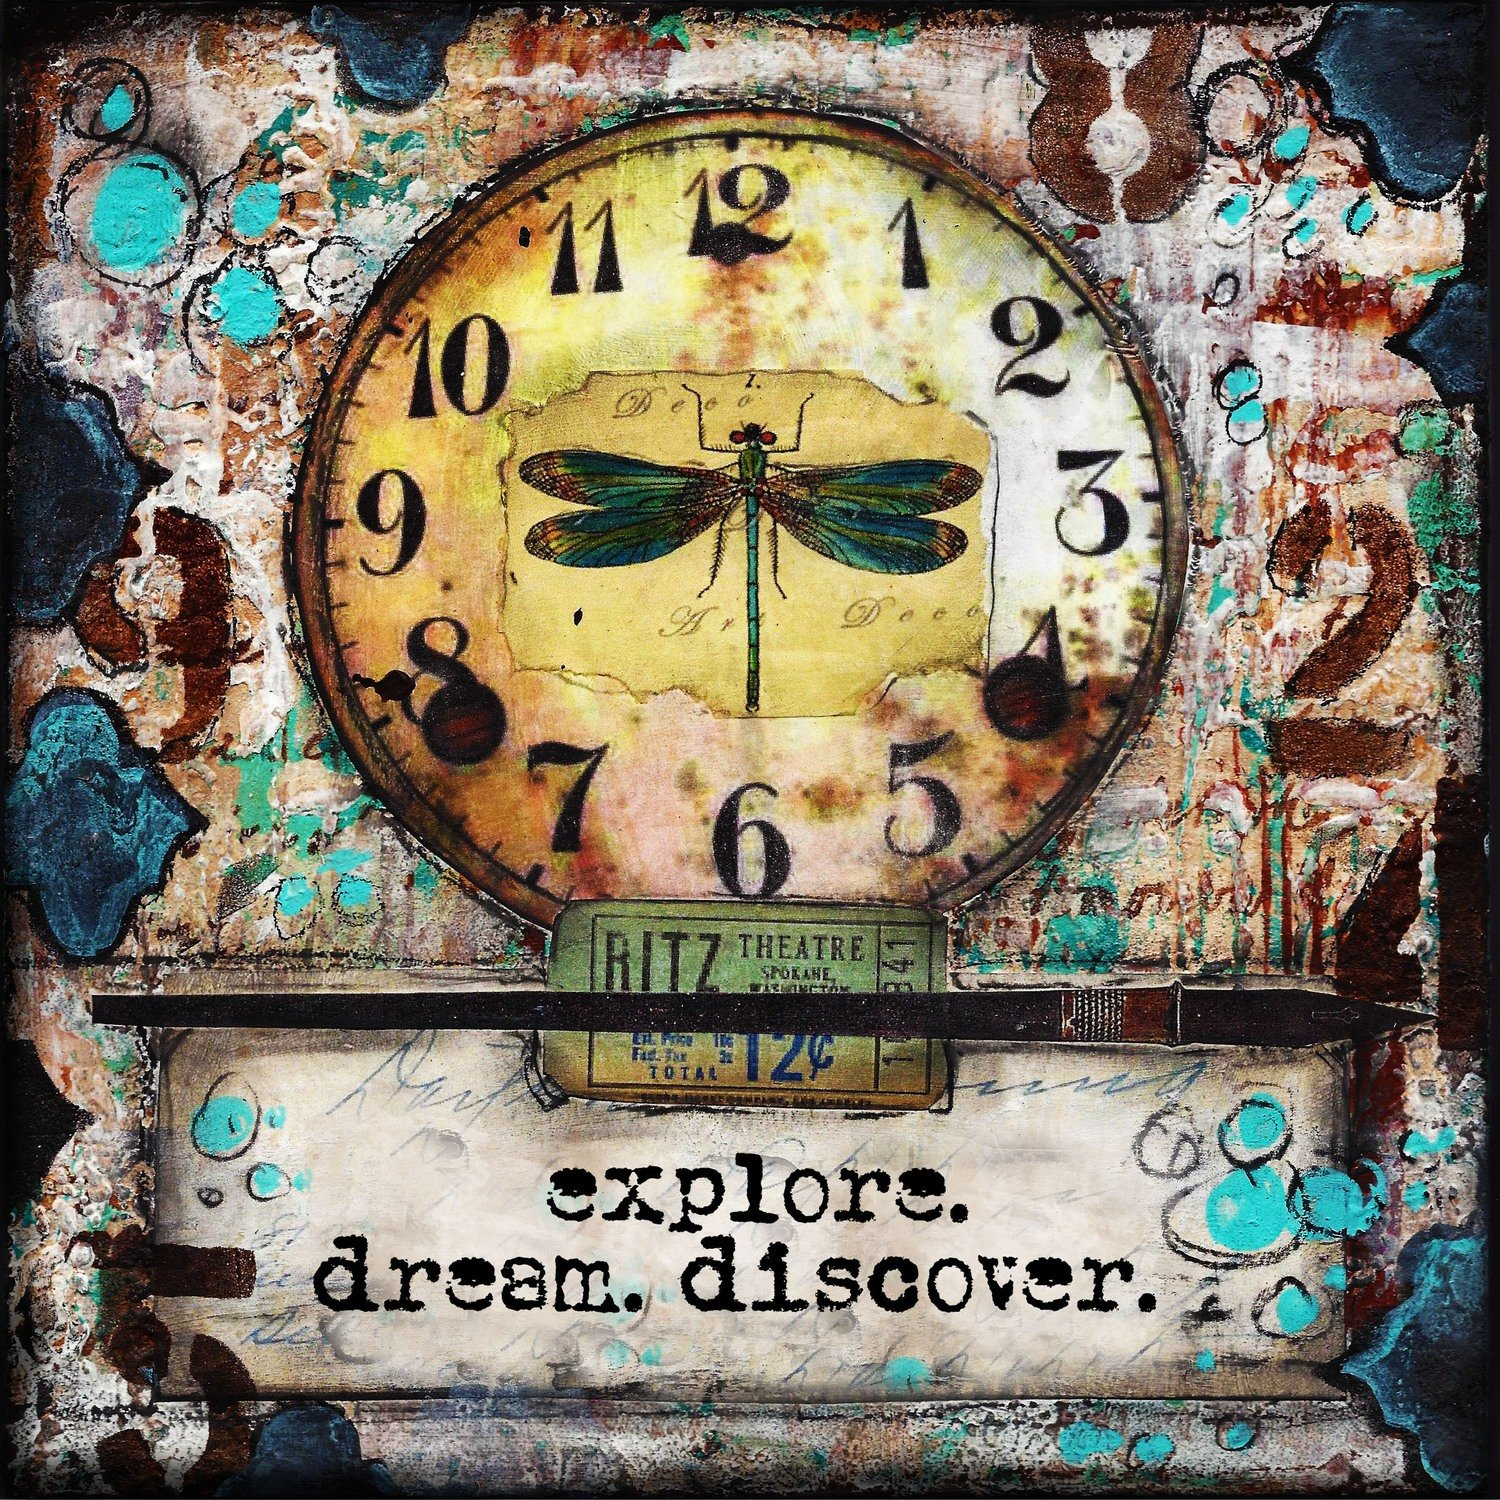 Explore, dream, discover print of the original on wood